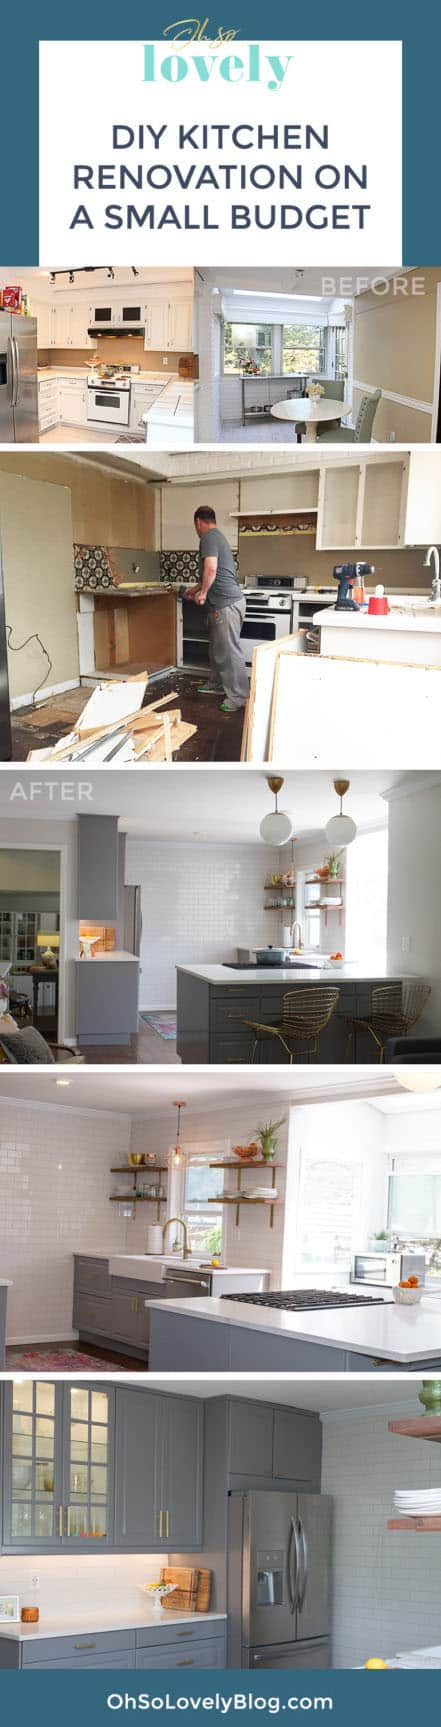 The journey of a DIY kitchen remodel on a small budget. Check out all the the before, during and after photos + product details! We saved almost $50,000 by doing most of the work ourselves!